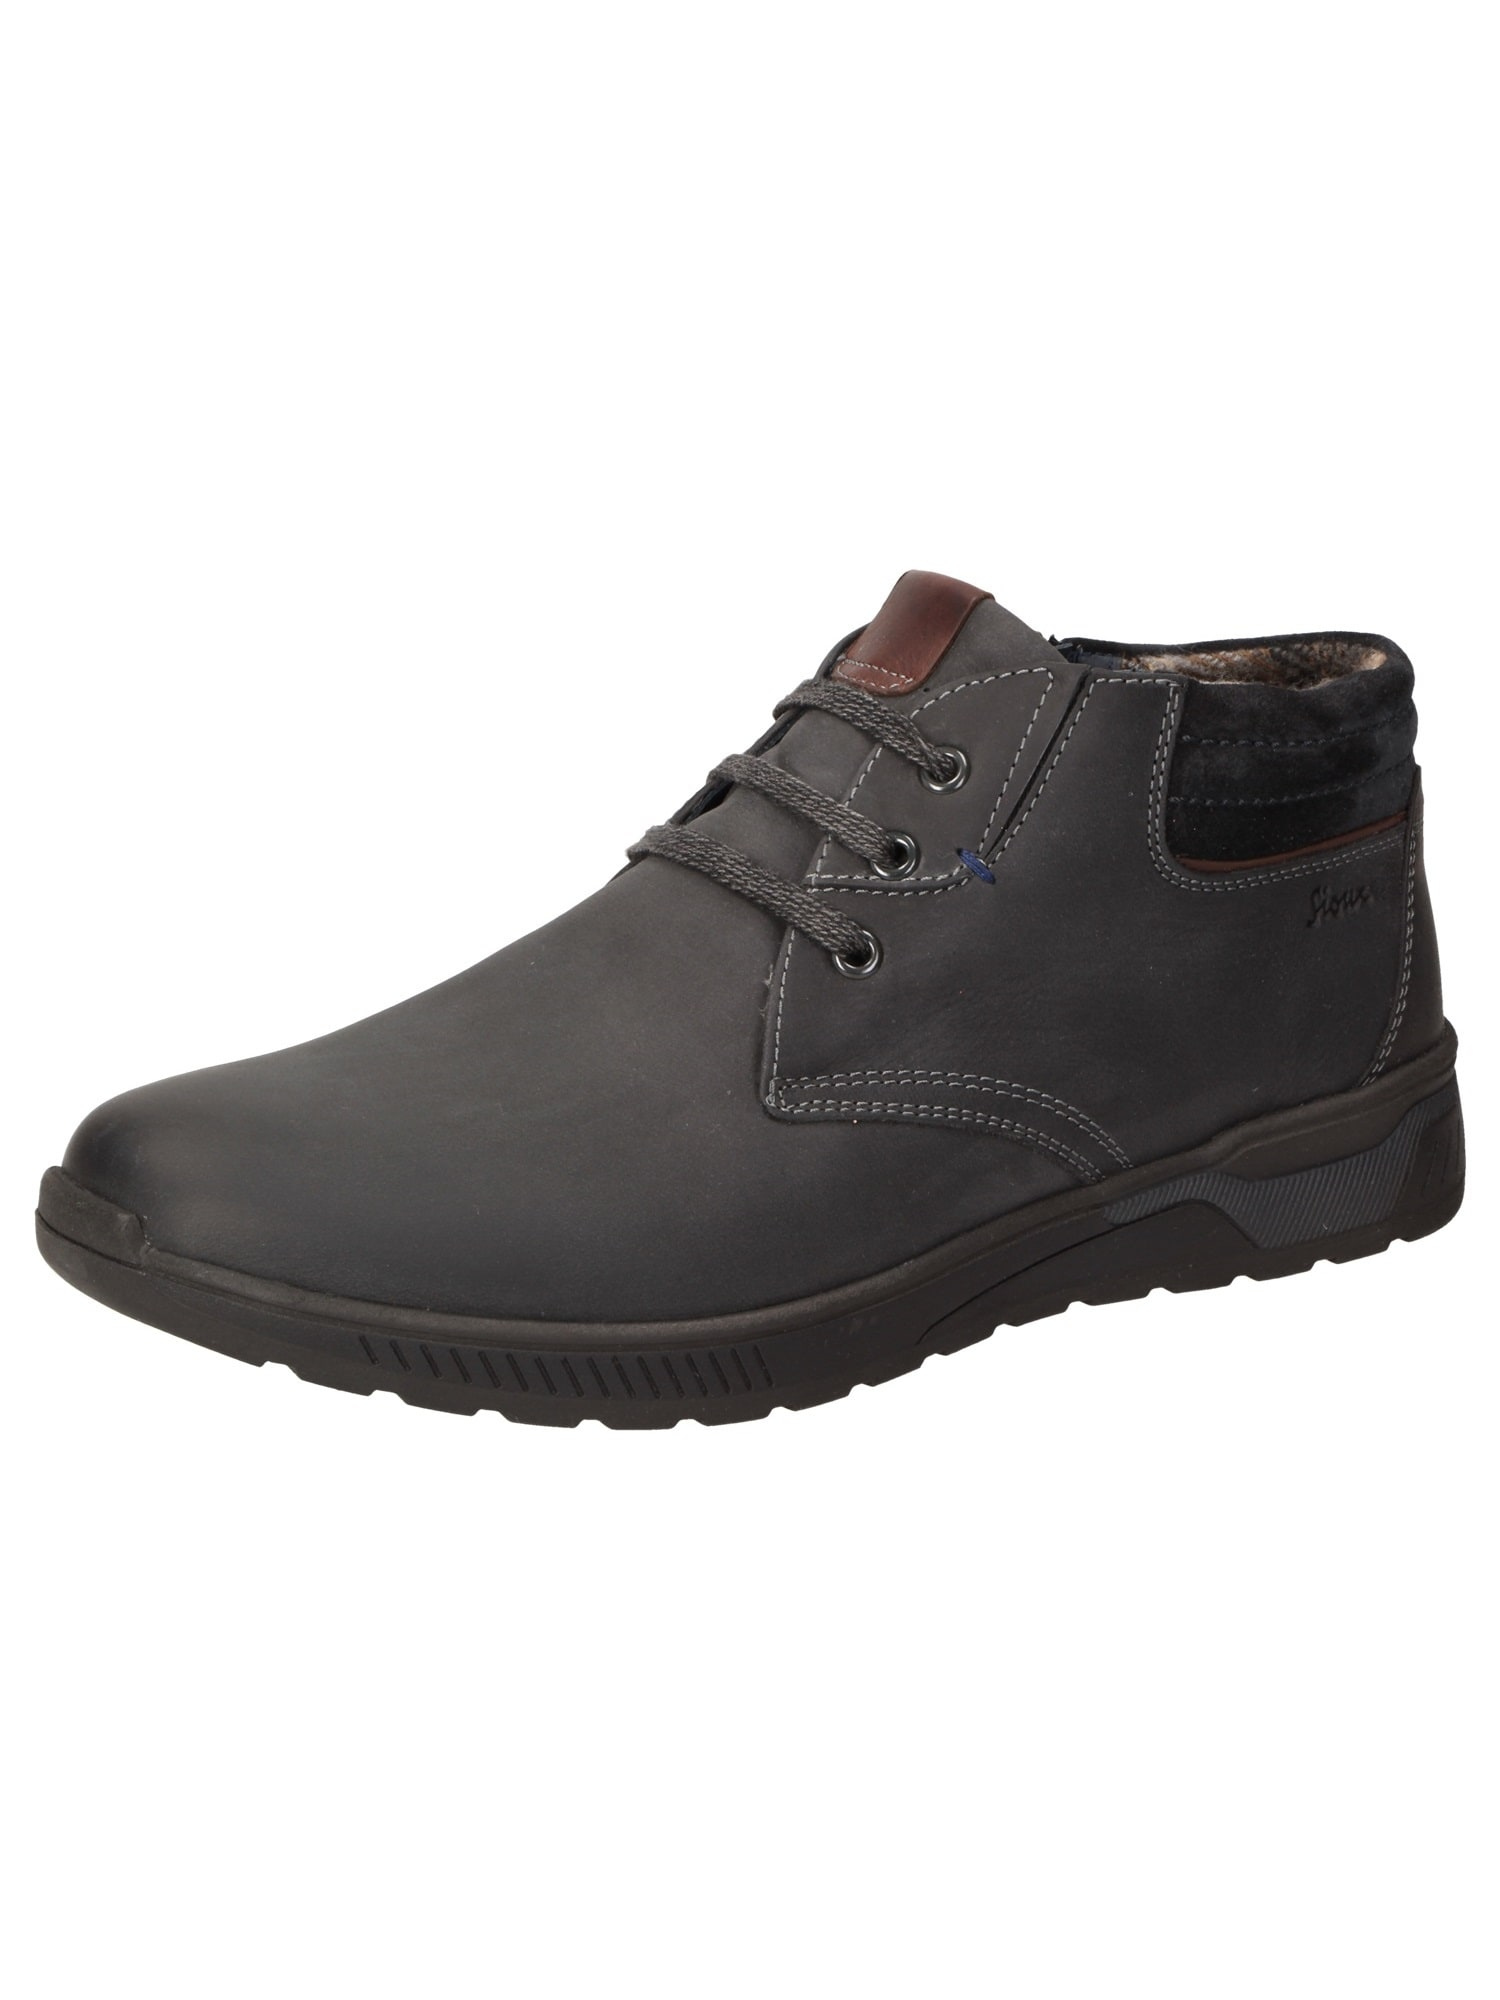 Stiefelette ' Hensley-705-J ' | Schuhe > Boots | SIOUX